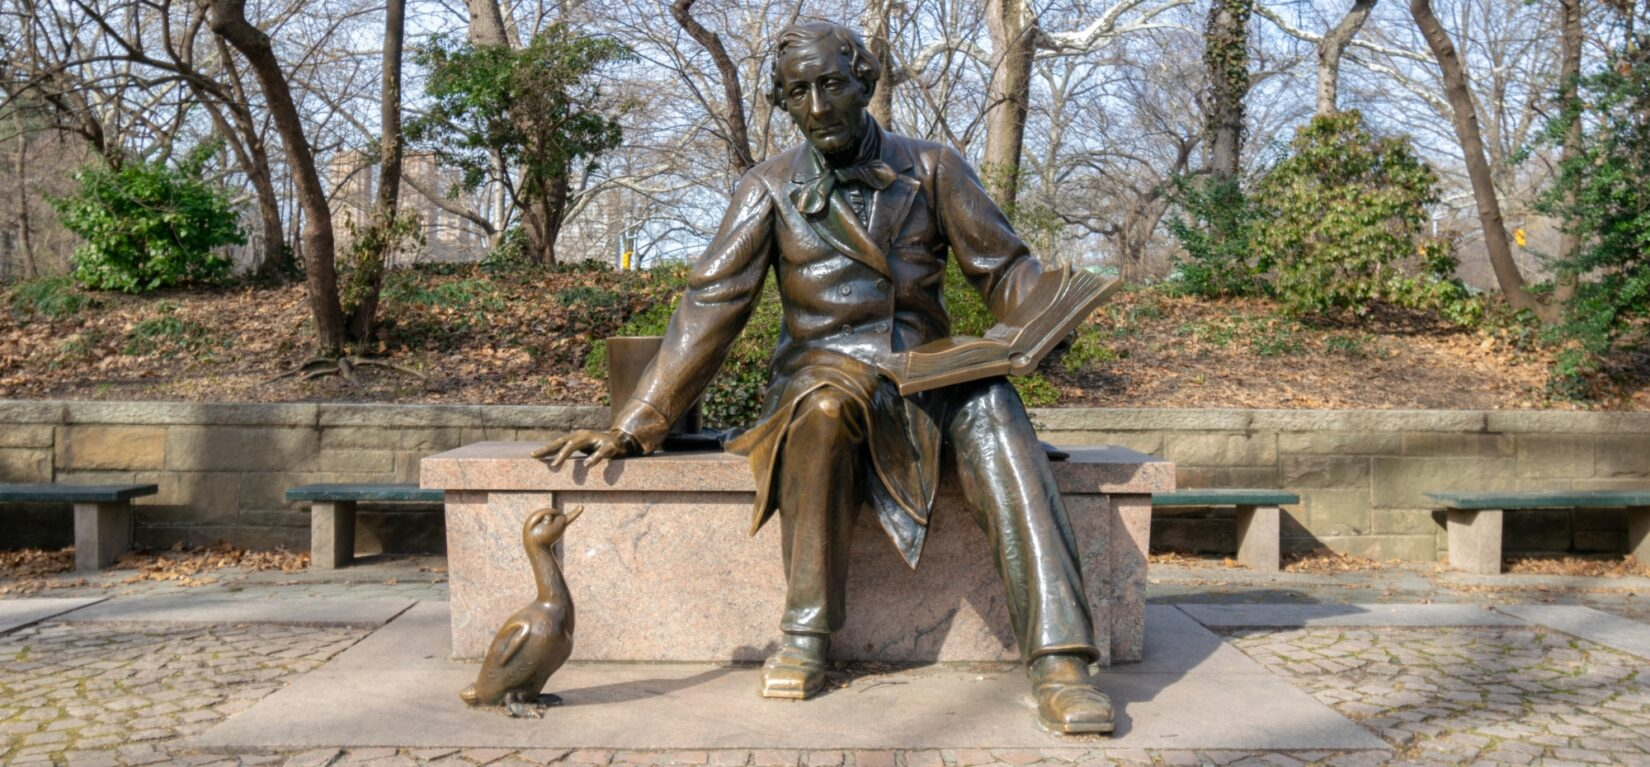 The statue shows the author with an open book on his lap and a duckling at his feet